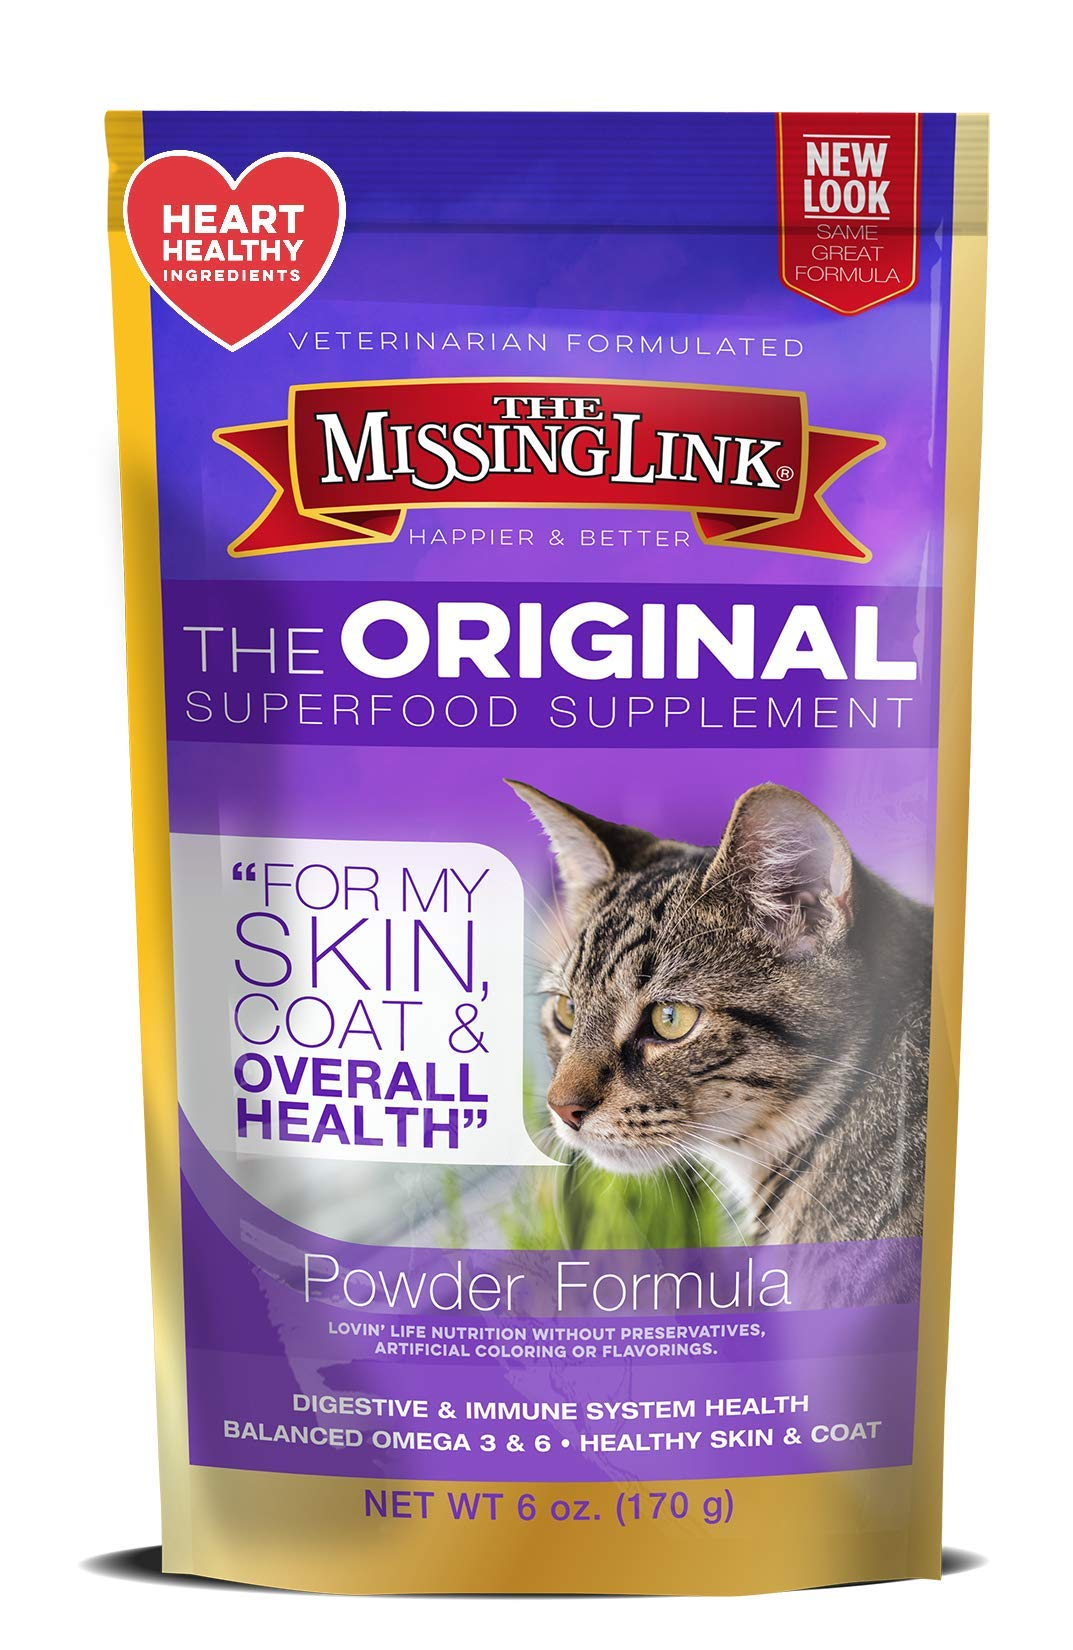 The Missing Link - Original All Natural Superfood Cat Supplement - Balanced Omega 3 & 6 to support Healthy Skin Coat, Immunity and Overall Health - Feline Formula - 6 oz. by The Missing Link